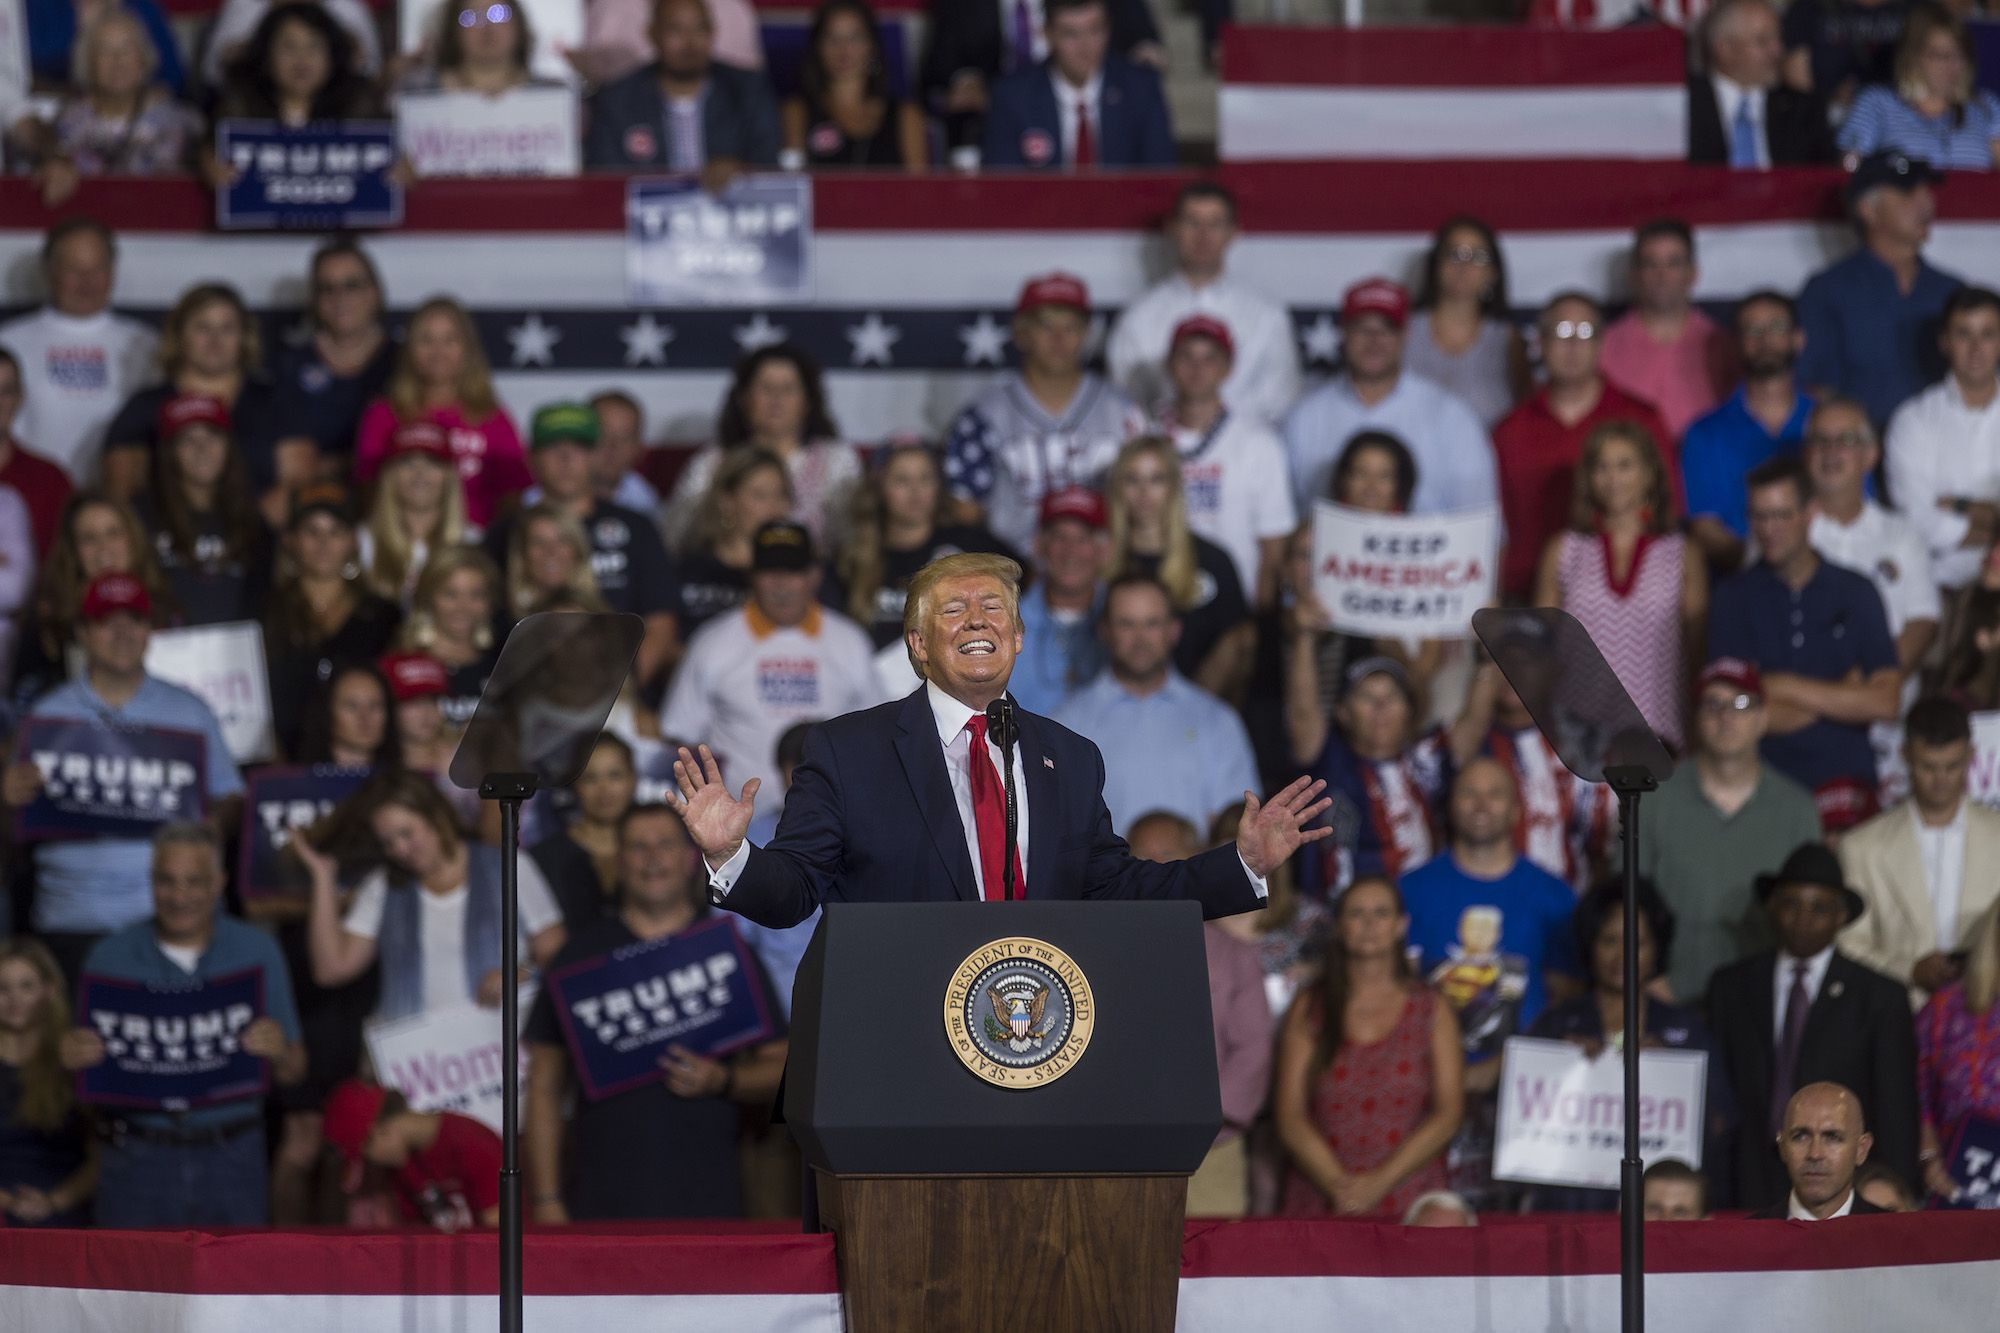 Trump's Evangelical Fans Got Upset at His 'Send Her Back' Rally, But Not at the 'Send Her Back' Part